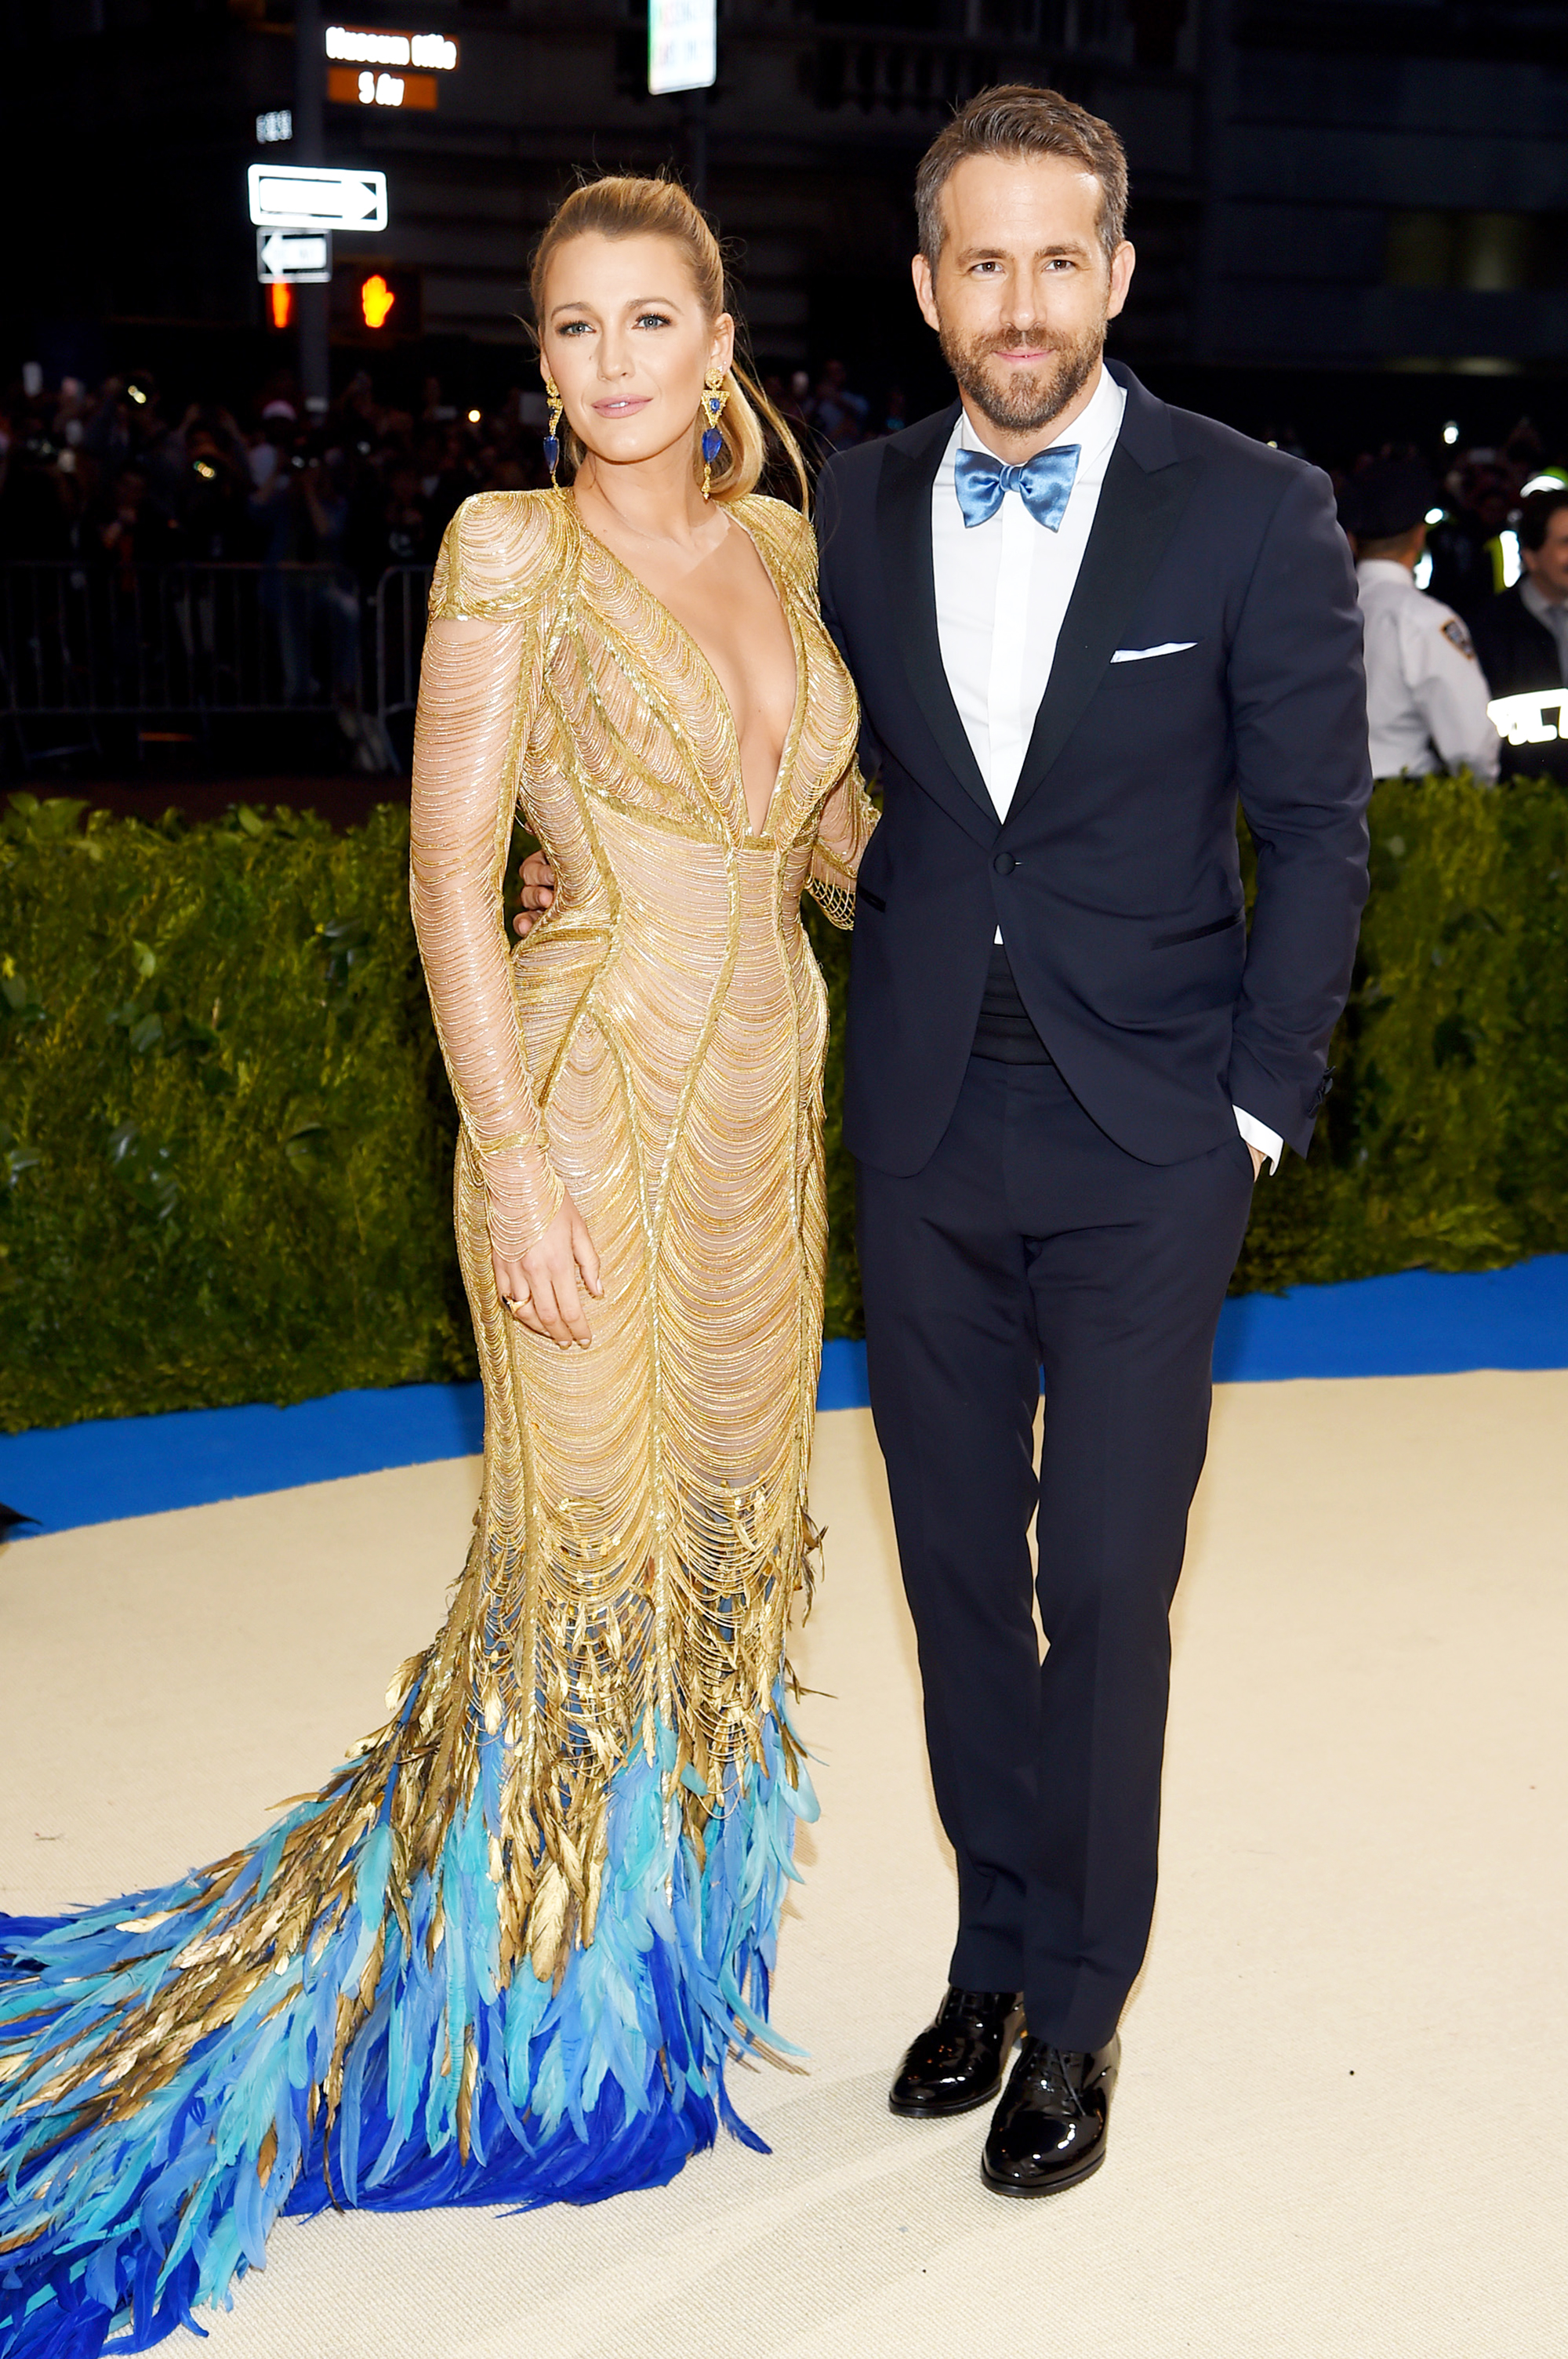 Blake Lively and Ryan Reynolds attend The Metropolitan Museum of Art's Costume Institute benefit gala celebrating the opening of the Rei Kawakubo/Comme des Garçons: Art of the In-Between exhibition in New York City, on May 1, 2017.